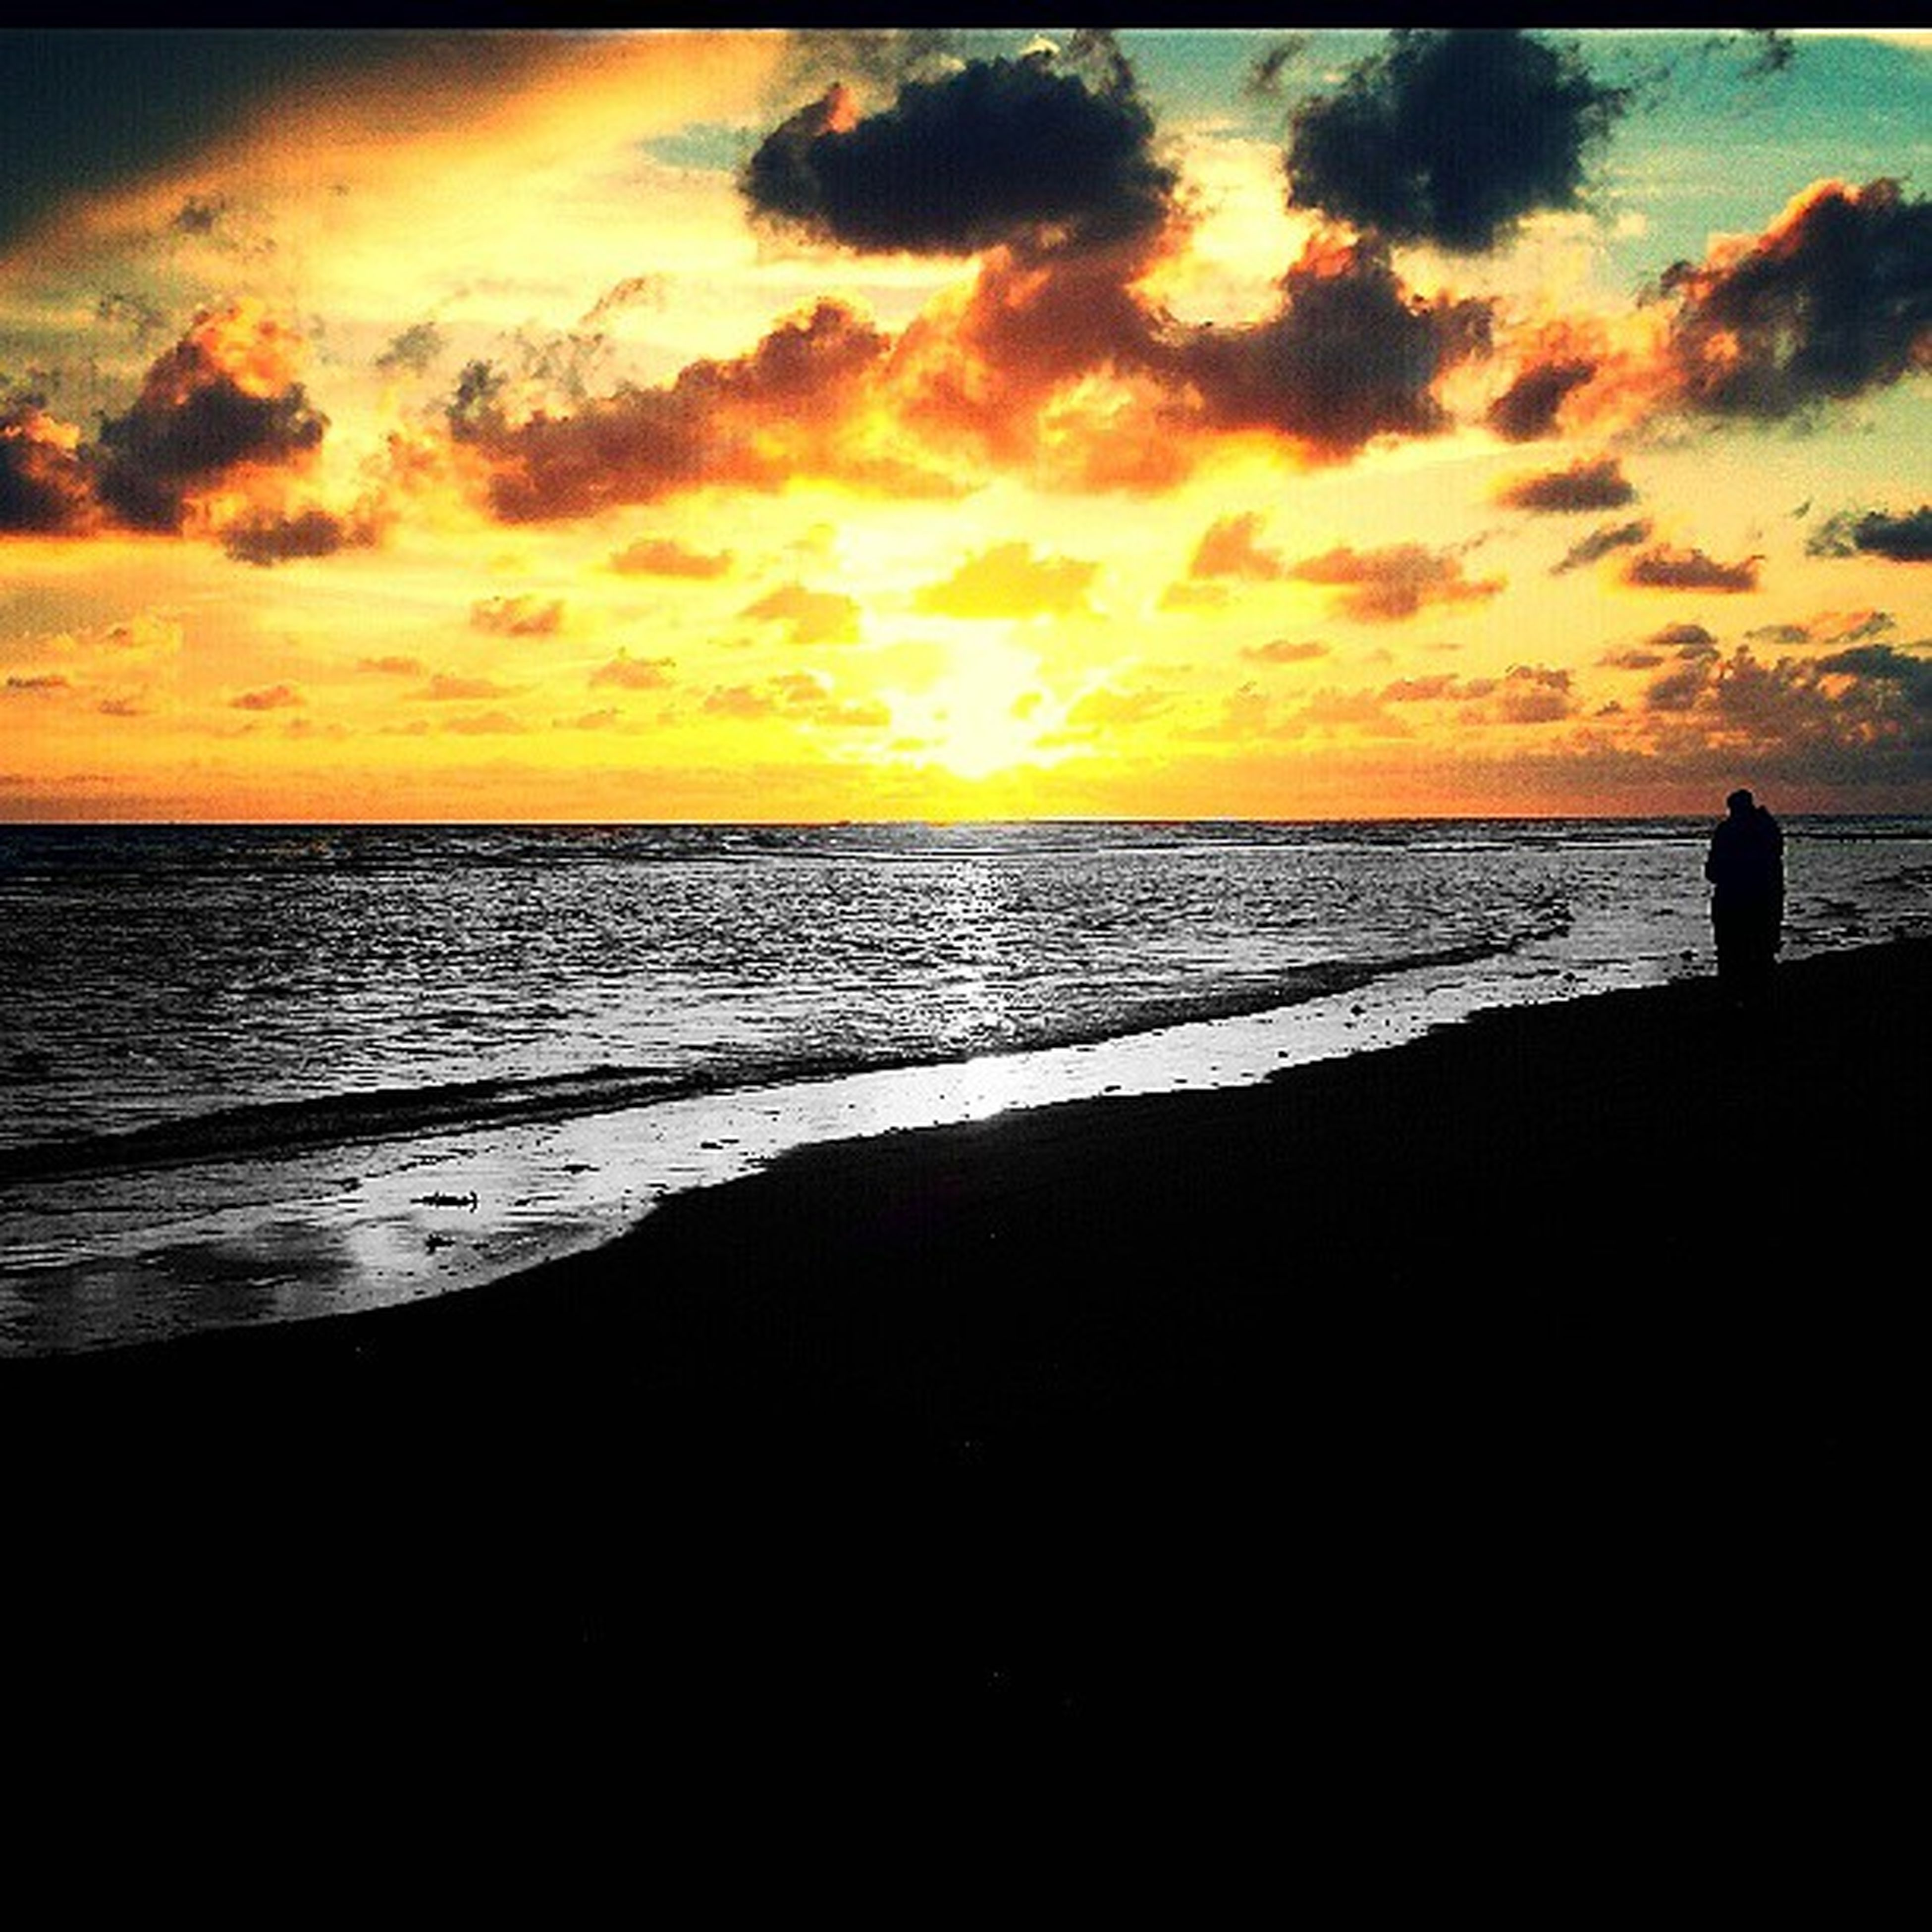 sunset, sea, horizon over water, water, scenics, tranquil scene, sky, beauty in nature, tranquility, beach, orange color, idyllic, silhouette, shore, nature, cloud - sky, dramatic sky, cloud, sun, reflection